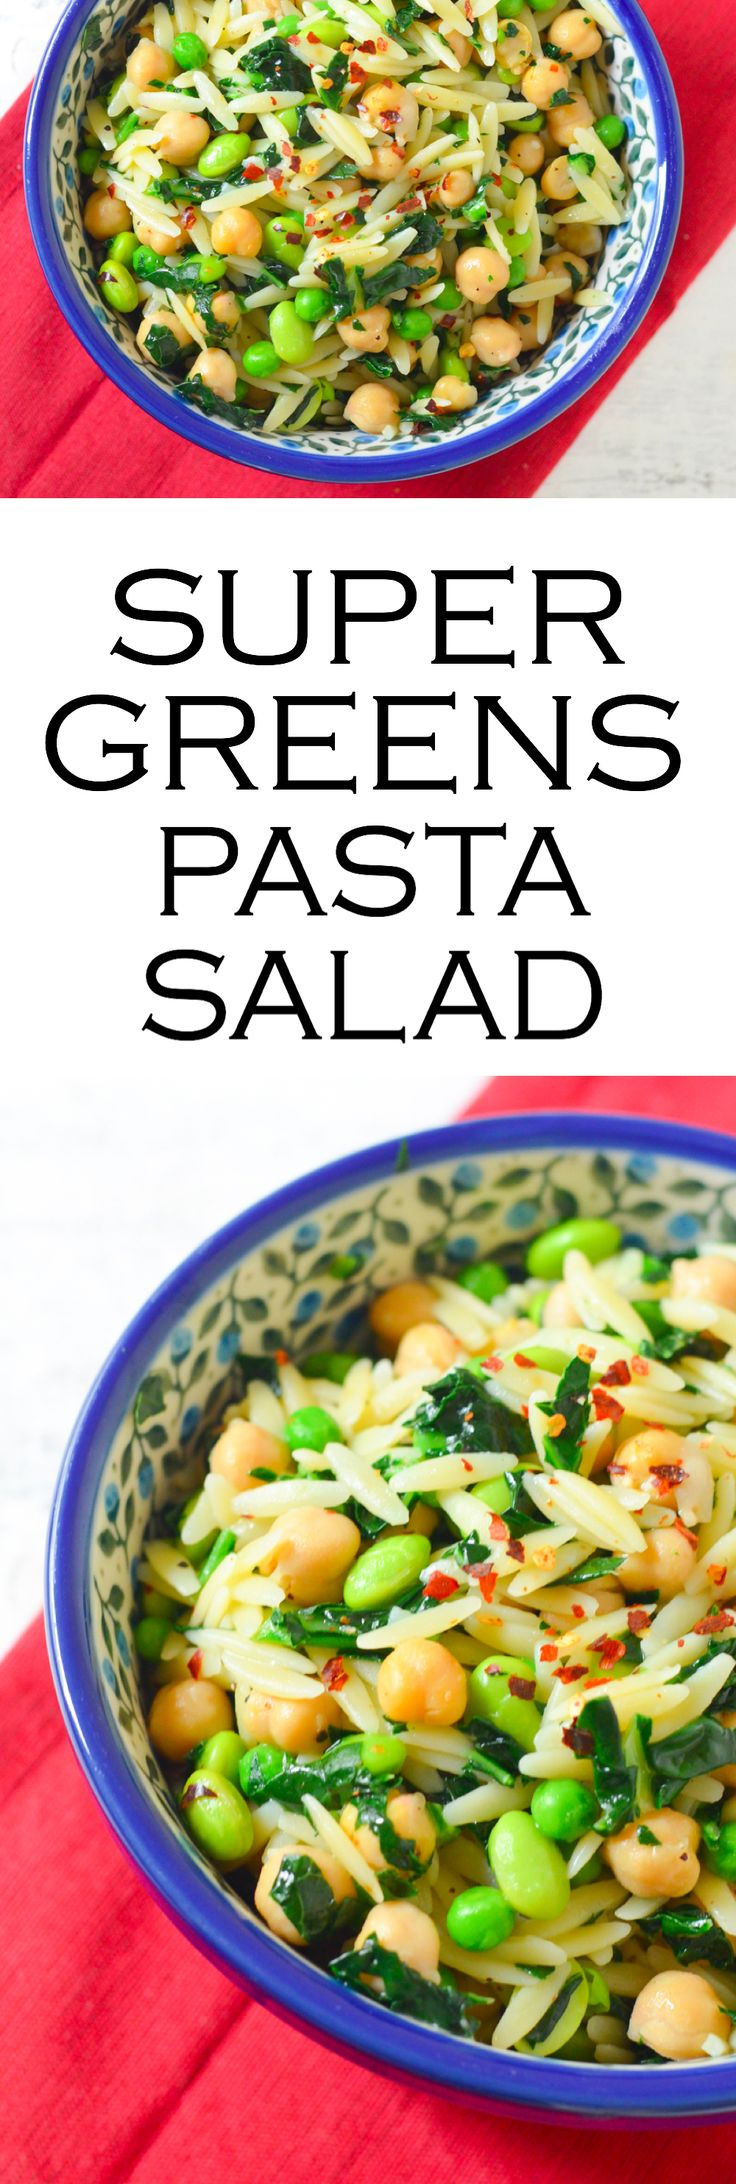 Get your superfoods + greens with this delicious pasta salad that's great warm or cold. Have it for lunch or dinner w. less guilt than regular pasta salad. It's healthy and delicious with frozen peas, edamame, and chickpeas!